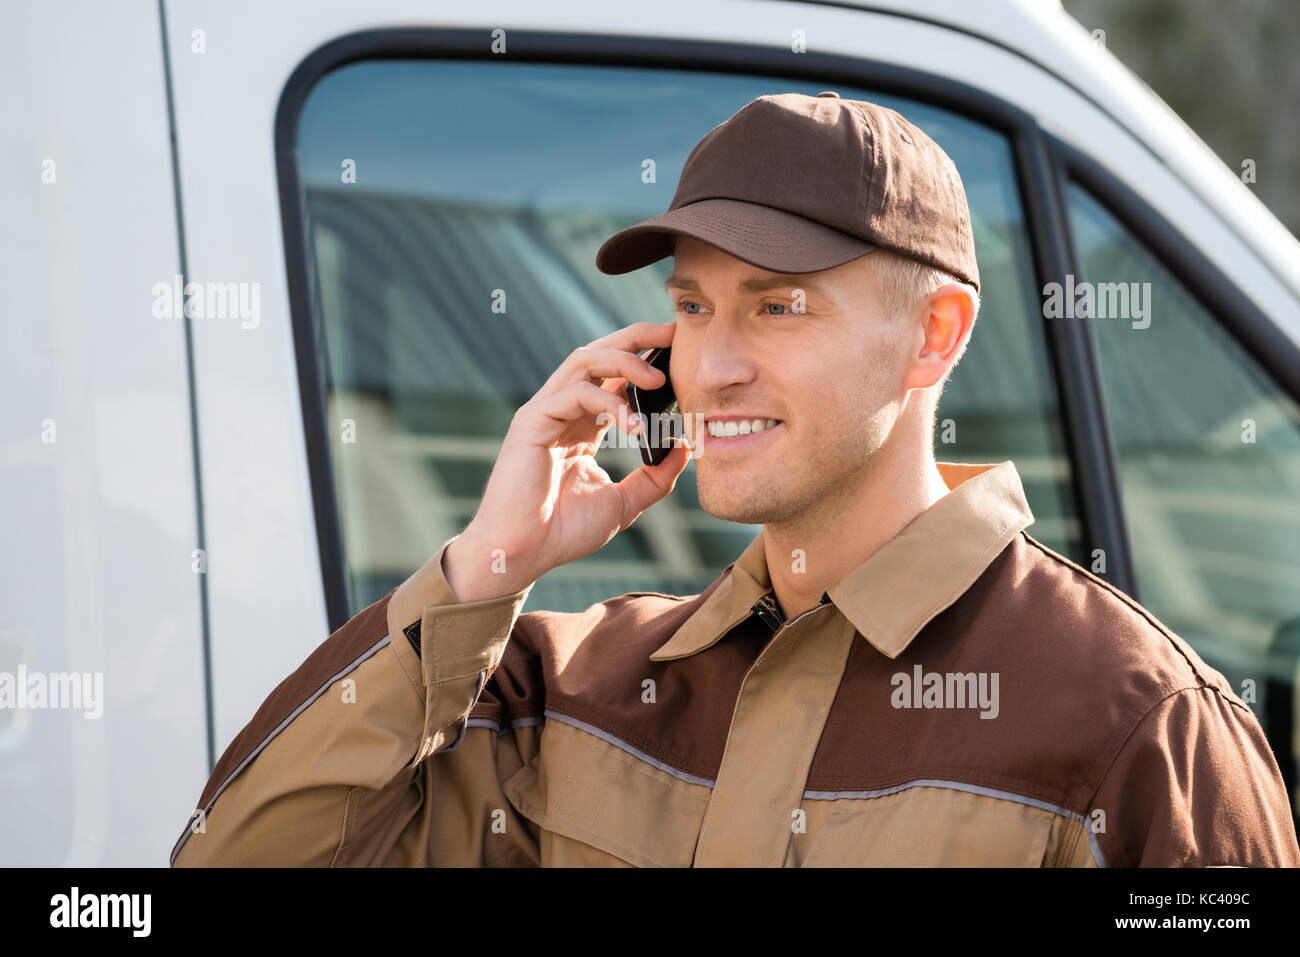 Portrait of smiling delivery man using mobile phone against truck - Stock Image